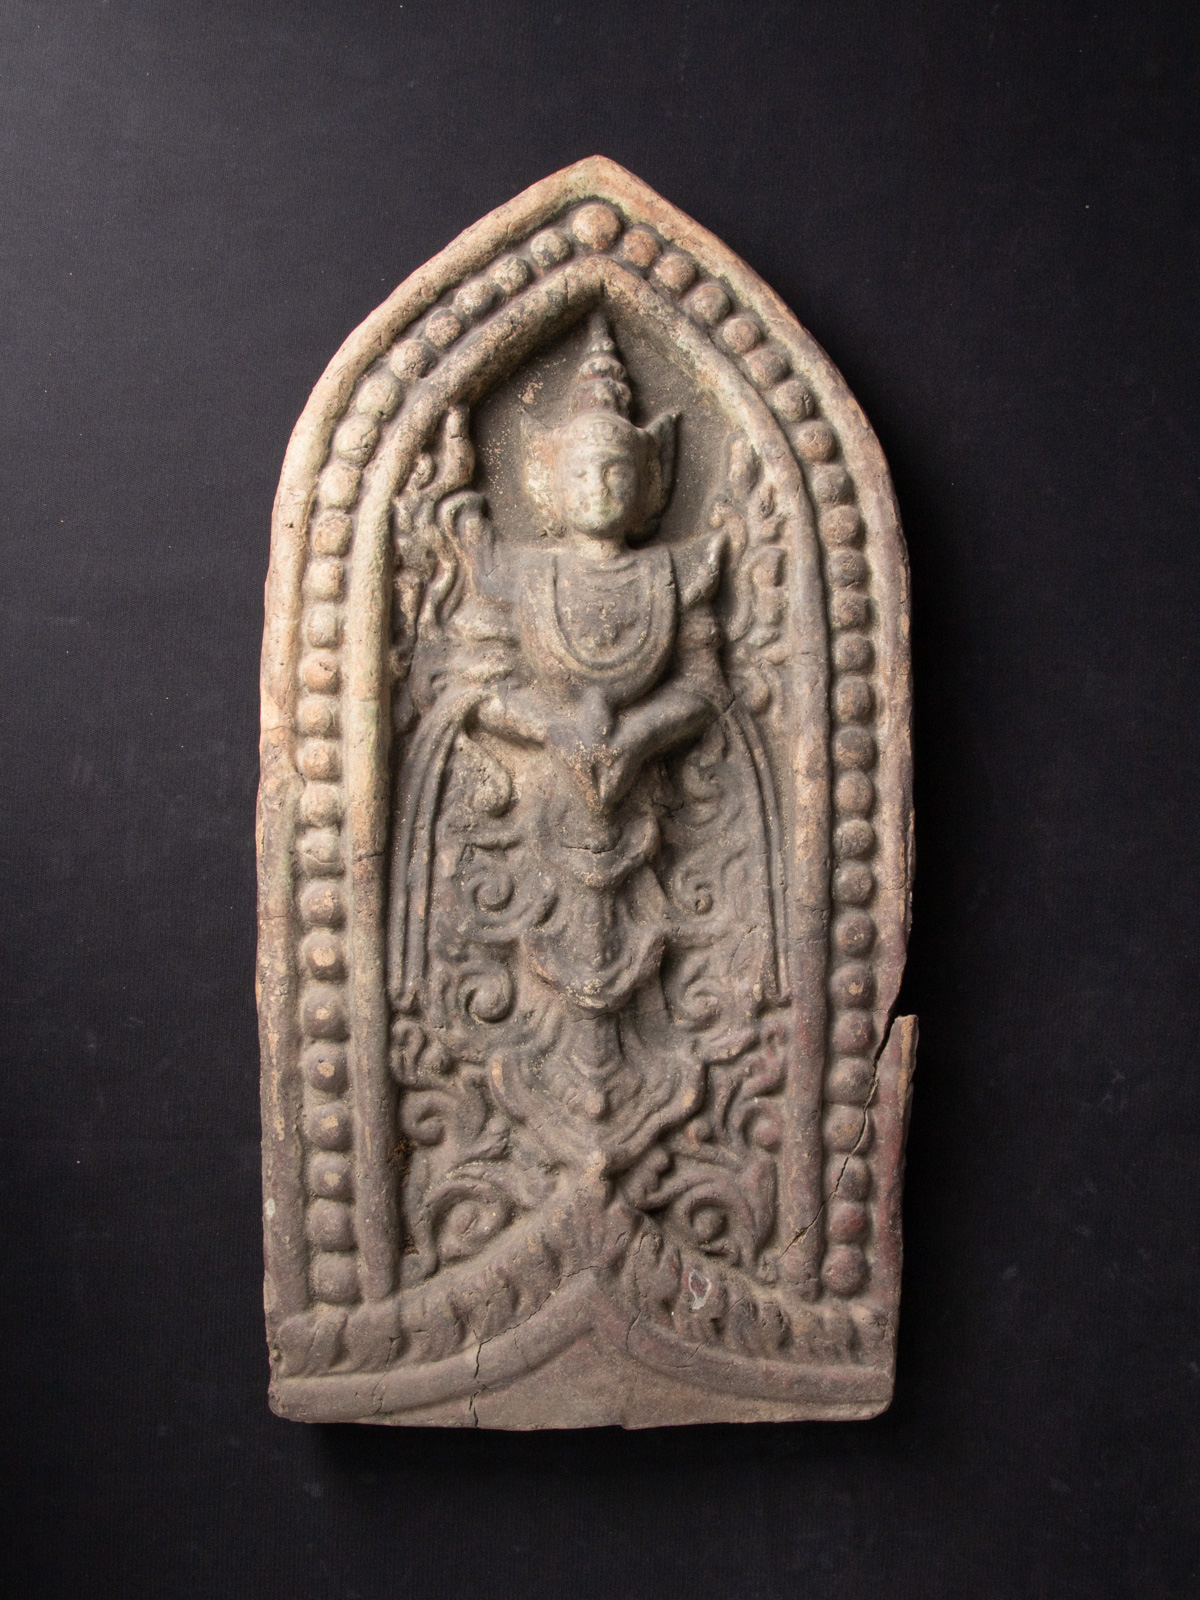 Antique terracotta panel from Burma made from Terracotta